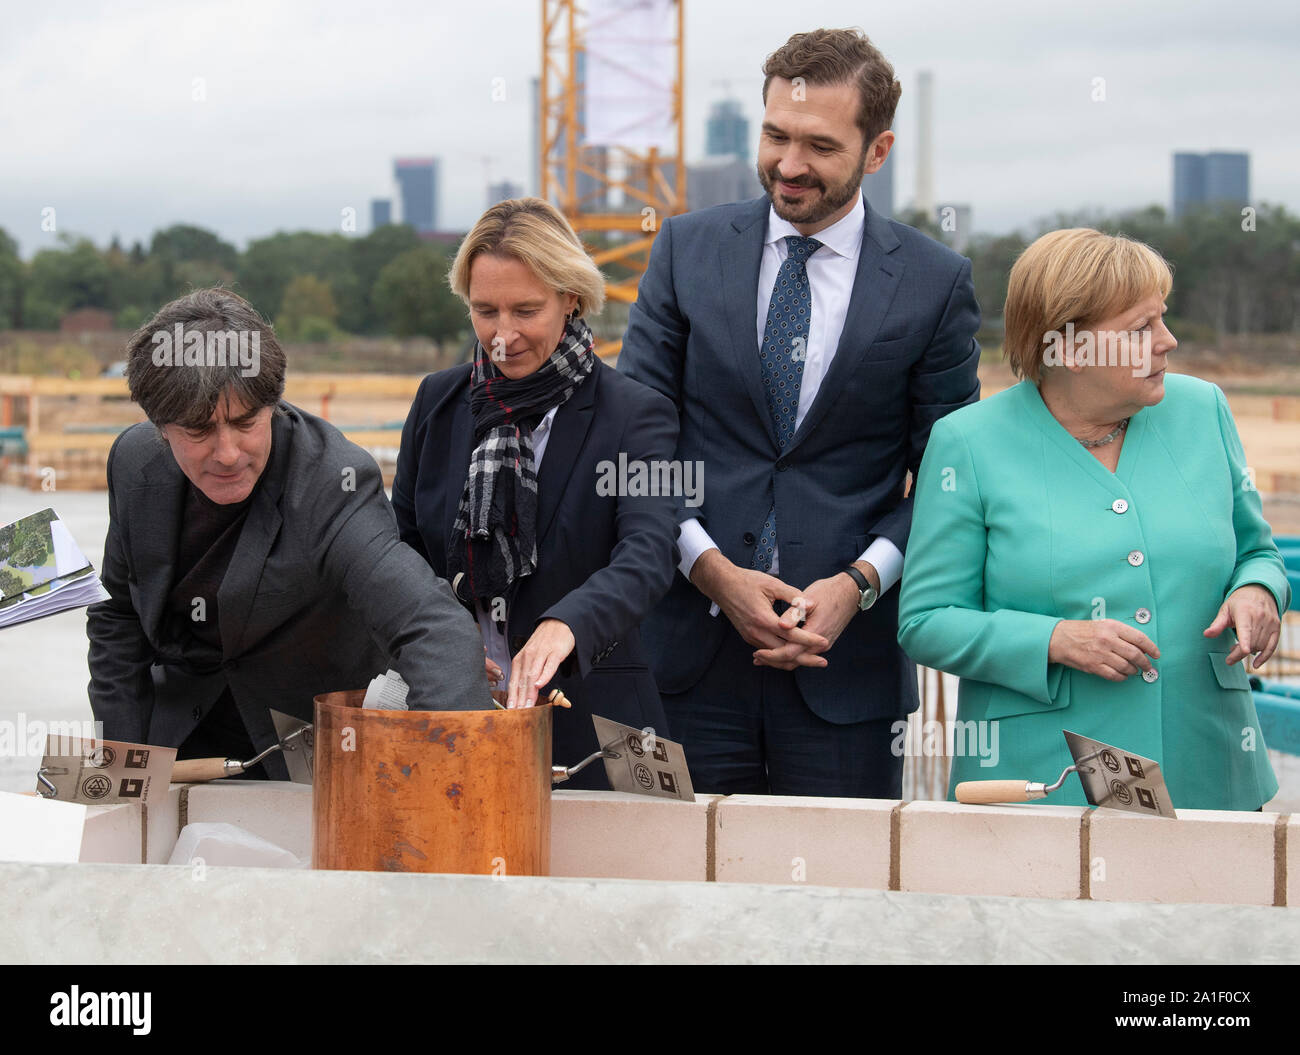 26 September 2019, Hessen, Frankfurt/Main: Federal coach Joachim Löw (l-r), DFB trainer Martina Voss-Tecklenburg, Friedrich Curtius, DFB Secretary General and Federal Chancellor Agela Merkel (CDU) jointly equip a time capsule at the laying of the foundation stone of the DFB Academy. Photo: Boris Roessler/dpa Stock Photo